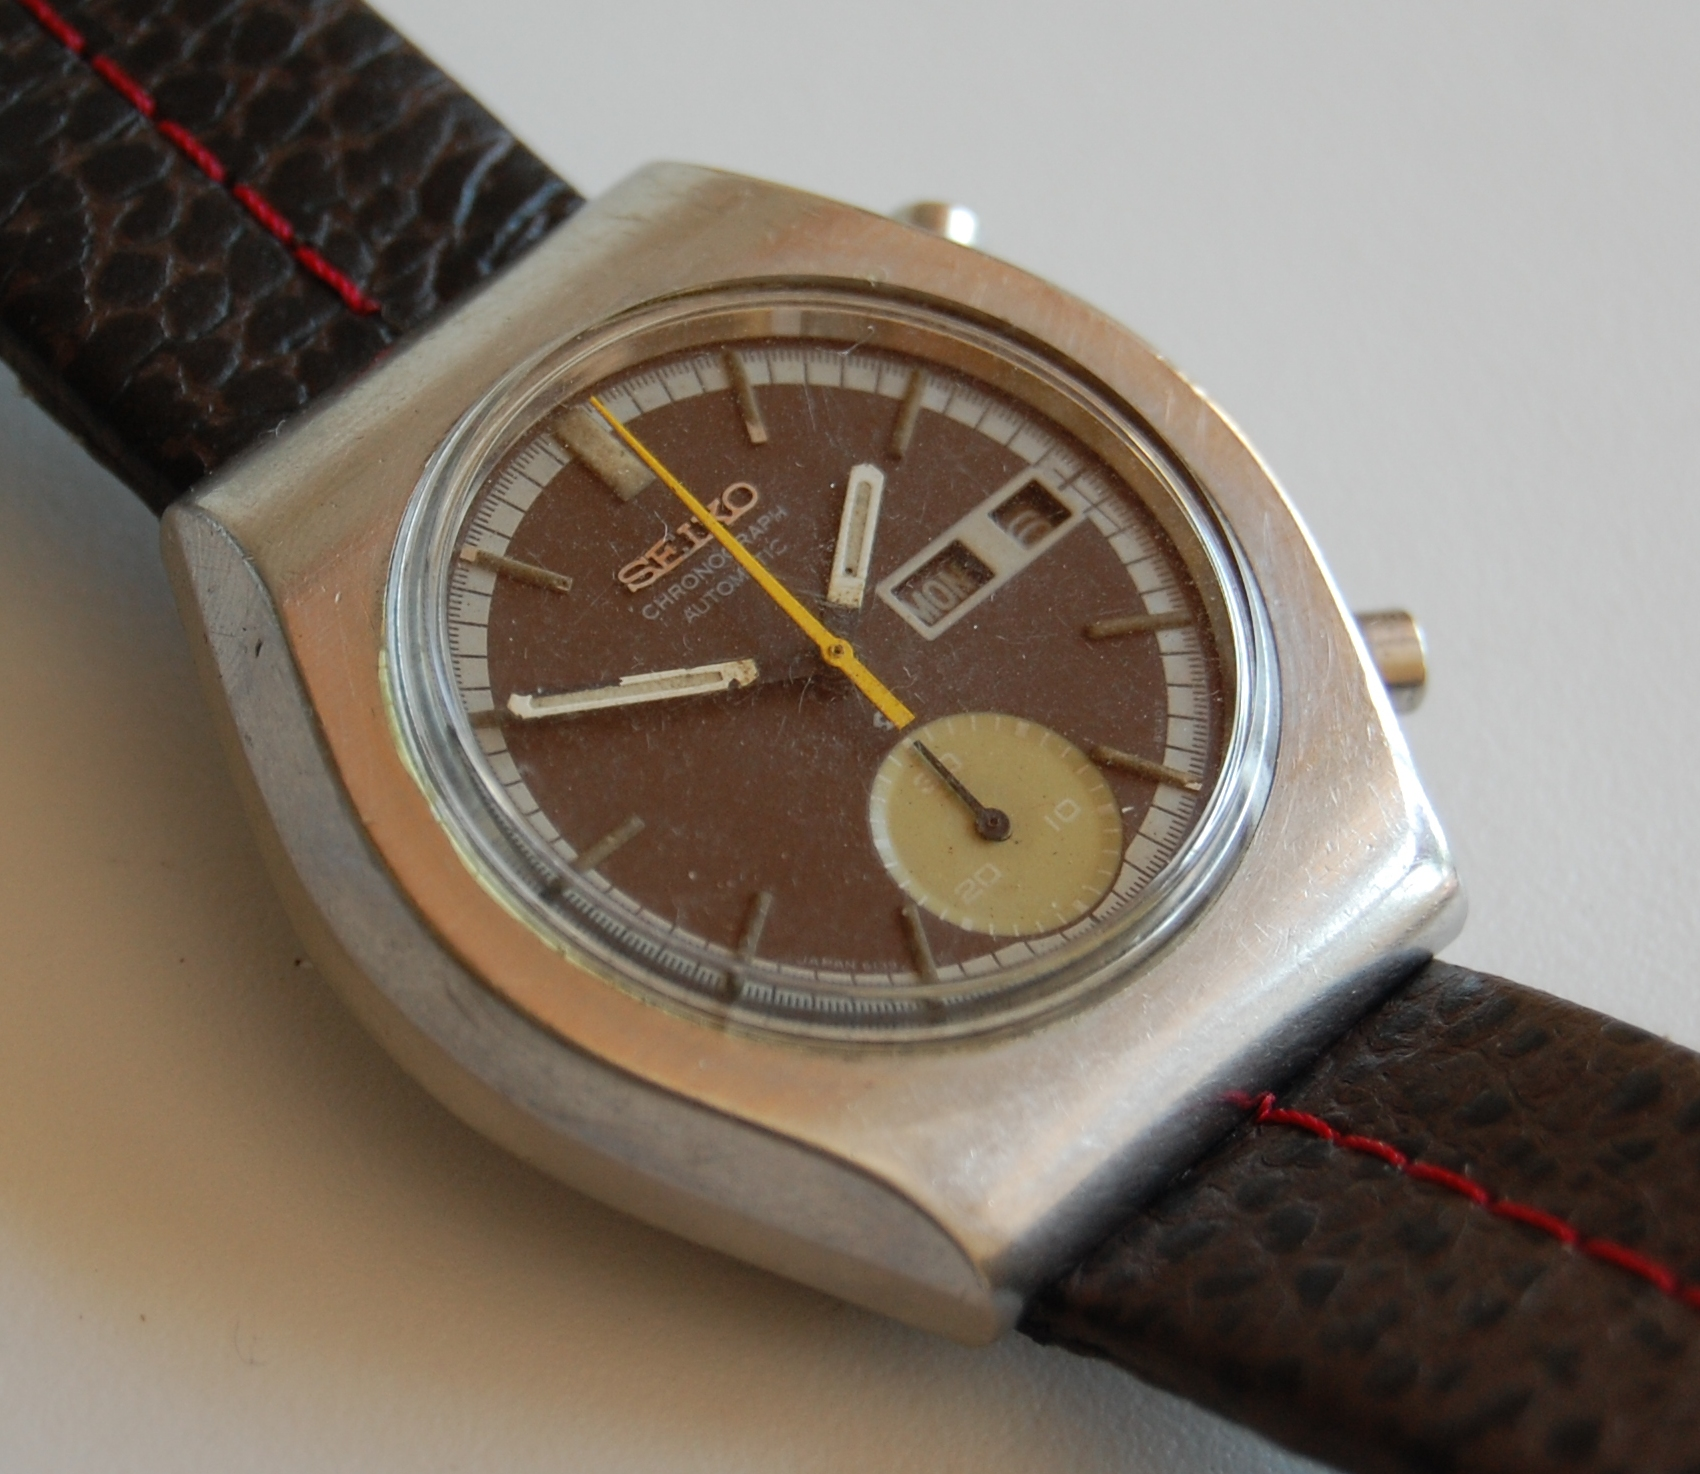 capable even chronograph see long level finishing on is ananta vintage ahead of brightz finer re a to i certainly what grand issue this the if phoenix watches automatic kakume seiko least at